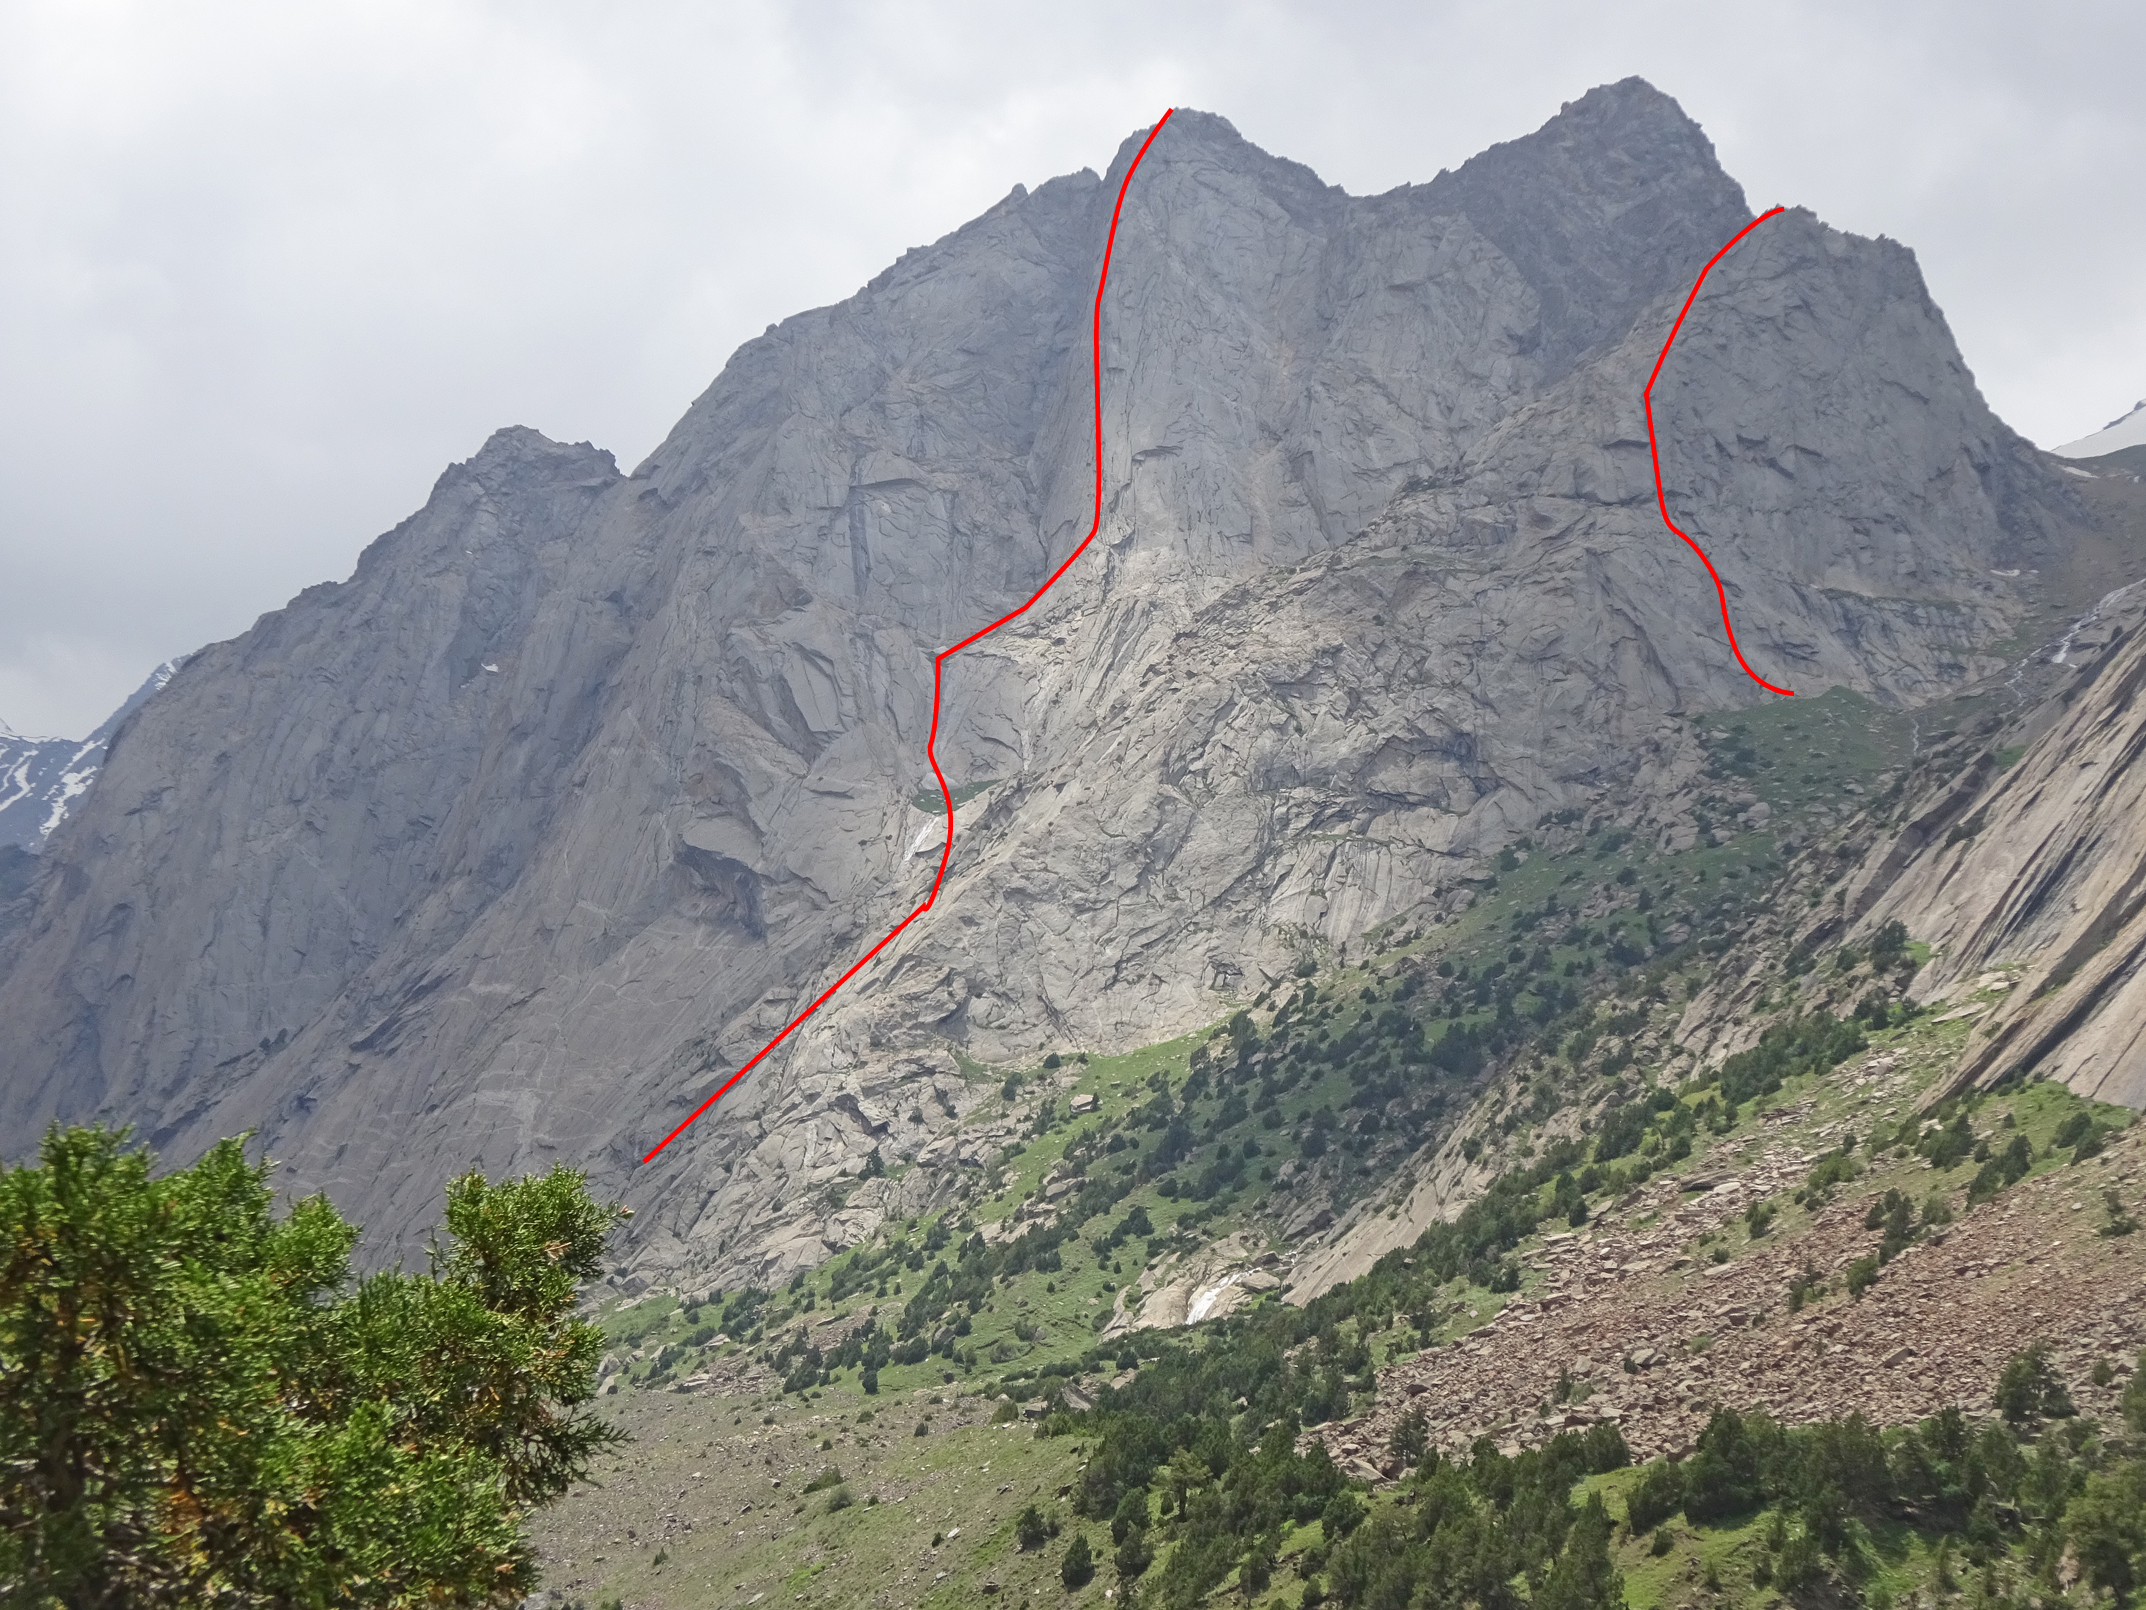 Silver and Green walls in the Kara-su Valley seen from the north-northeast. Approximate lines of the two new 2019 Austrian routes are marked: Tyrolean, to the main summit of Silver Wall, and Eaßtbegeung on Green Wall.